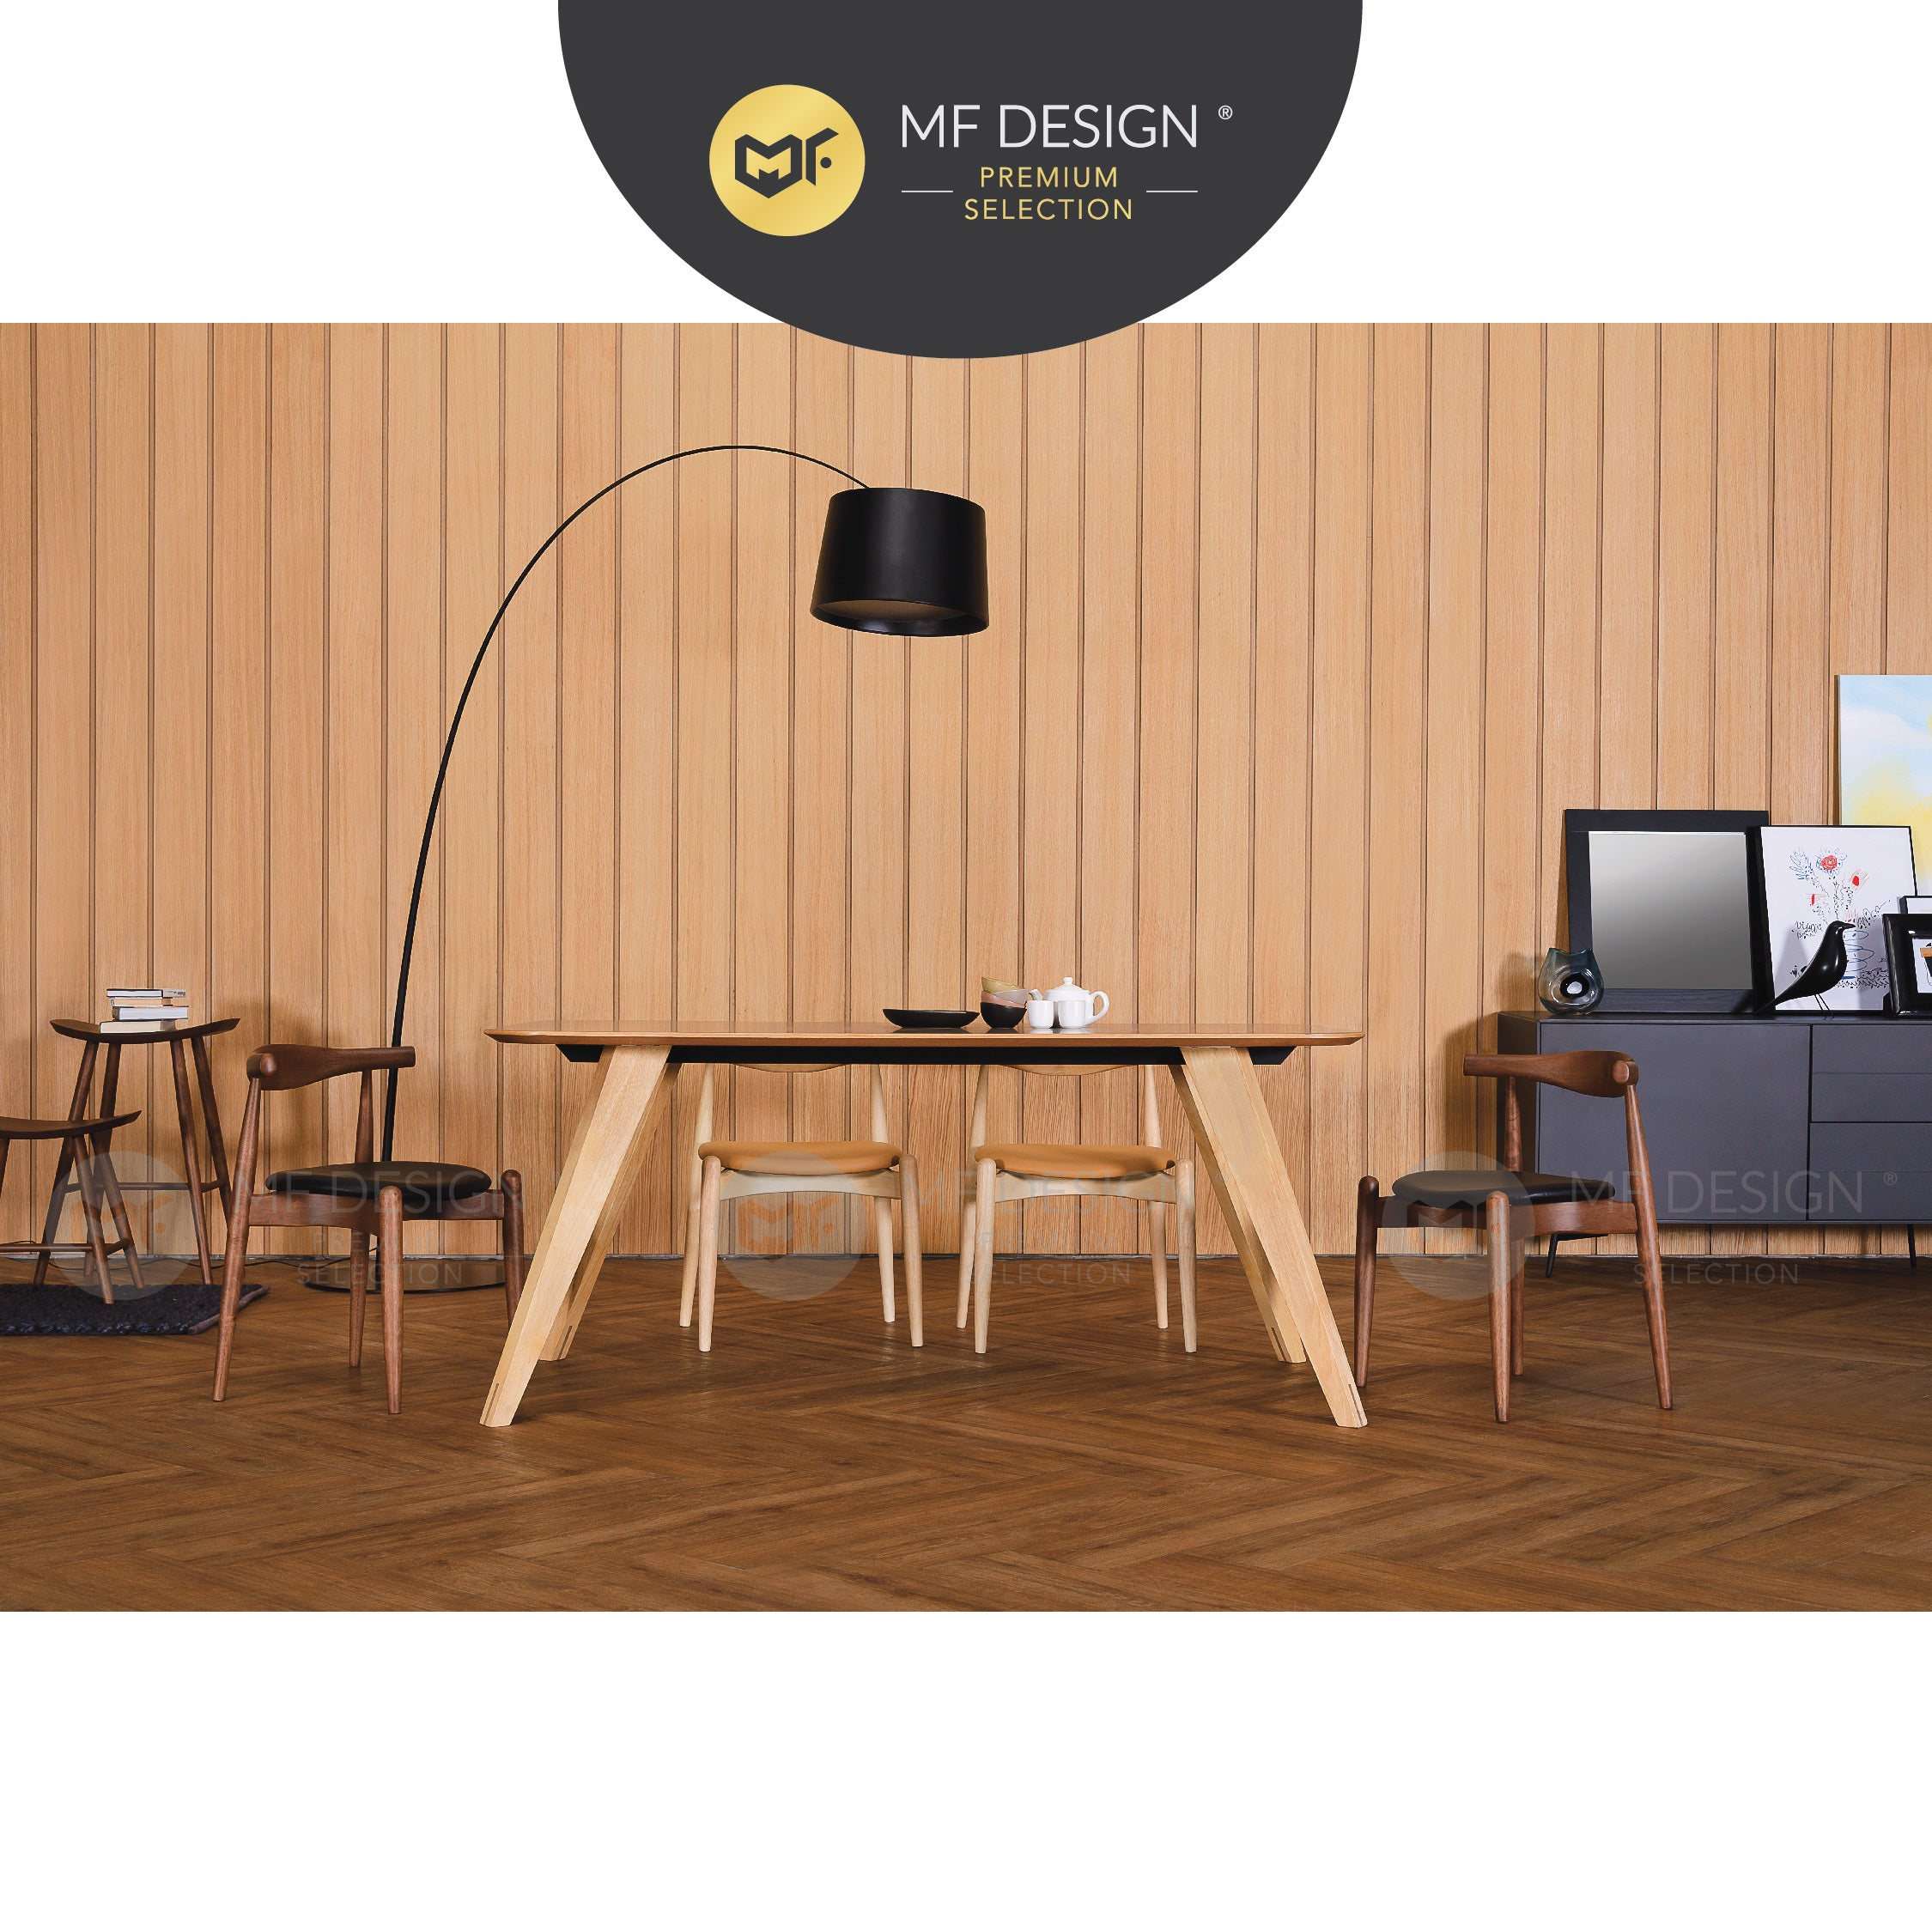 MFD Premium Bella Dining Chair / Wooden Chair / Solid Rubber Wood / Kerusi Makan Kayu Getah / Living Room / Scandinavian